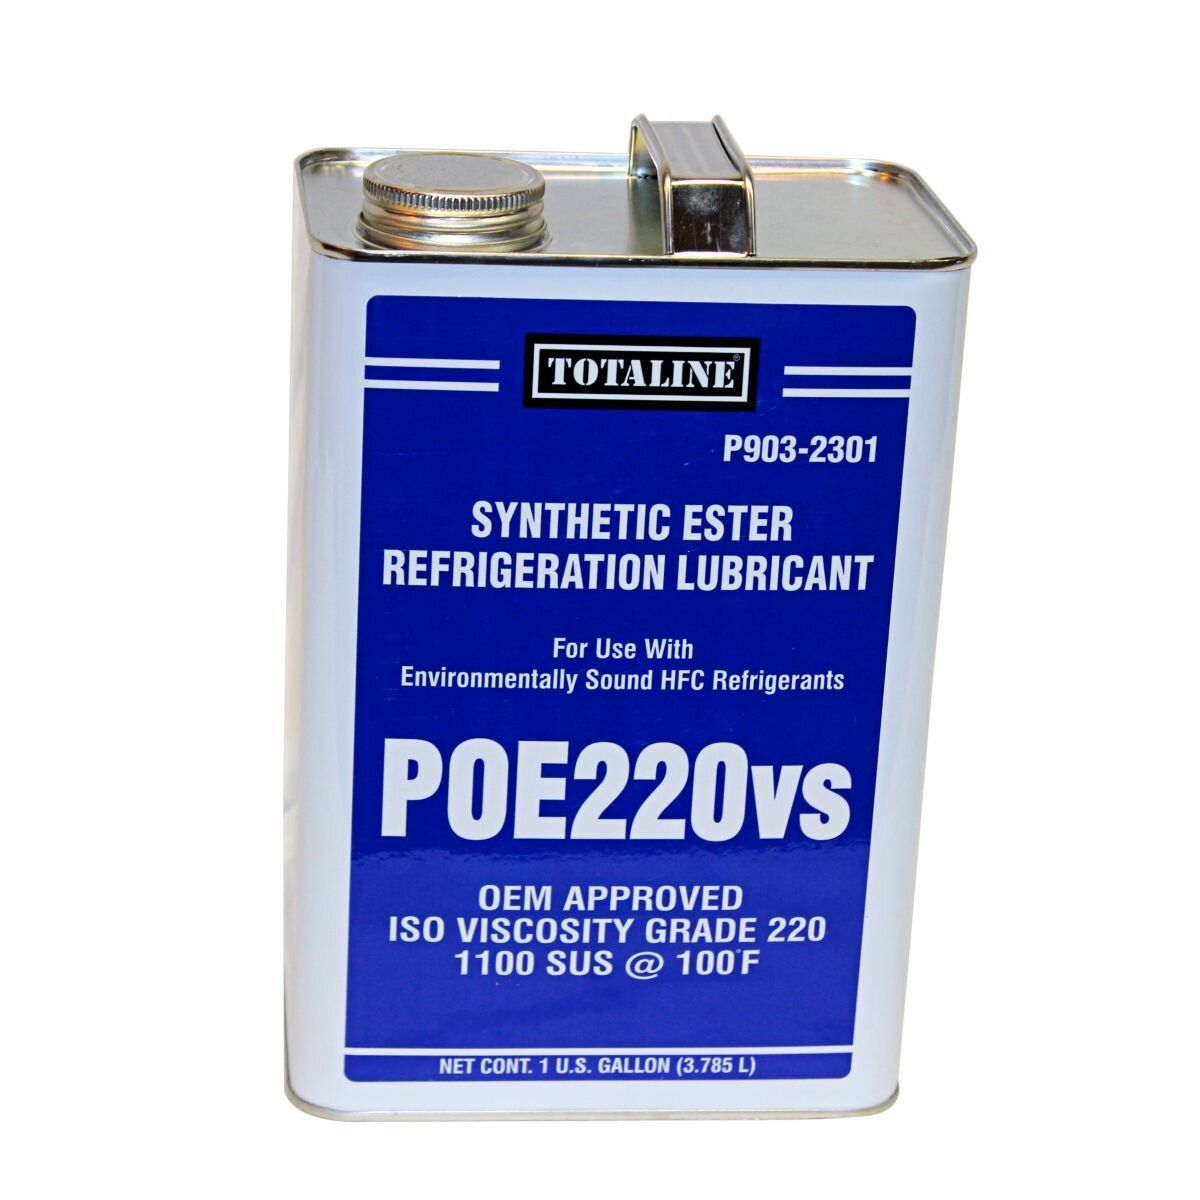 Totaline P903 2301 Poe 220vs Synthetic Ester Refrigeration Lubricant 1 Gal In 2020 Lubricant Oils Compressor